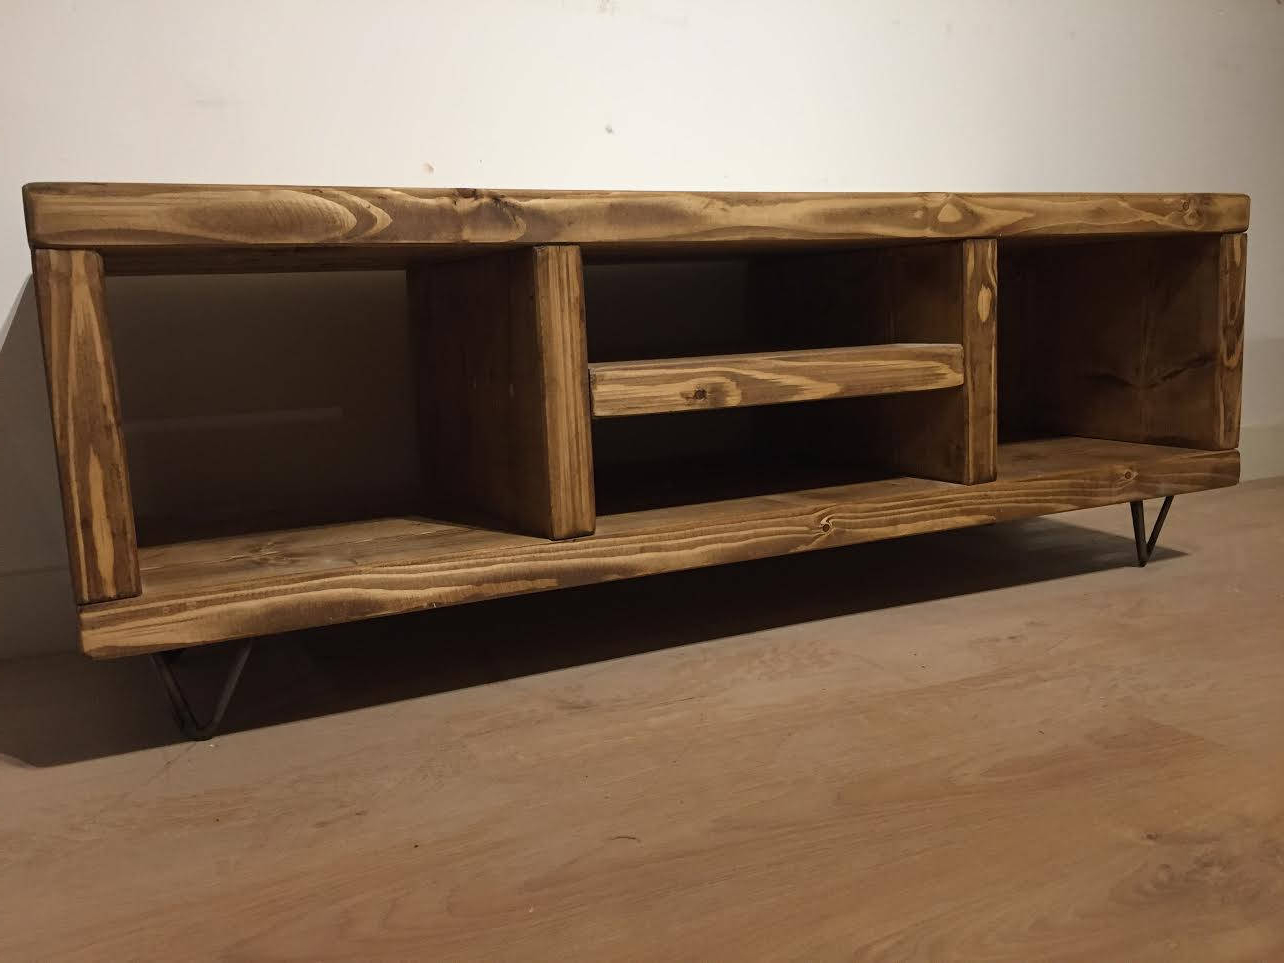 2018 New Pine Tv Cabinet With Hairpin Legs – Newco Interiors – Bespoke Intended For Hairpin Leg Tv Stands (View 3 of 20)